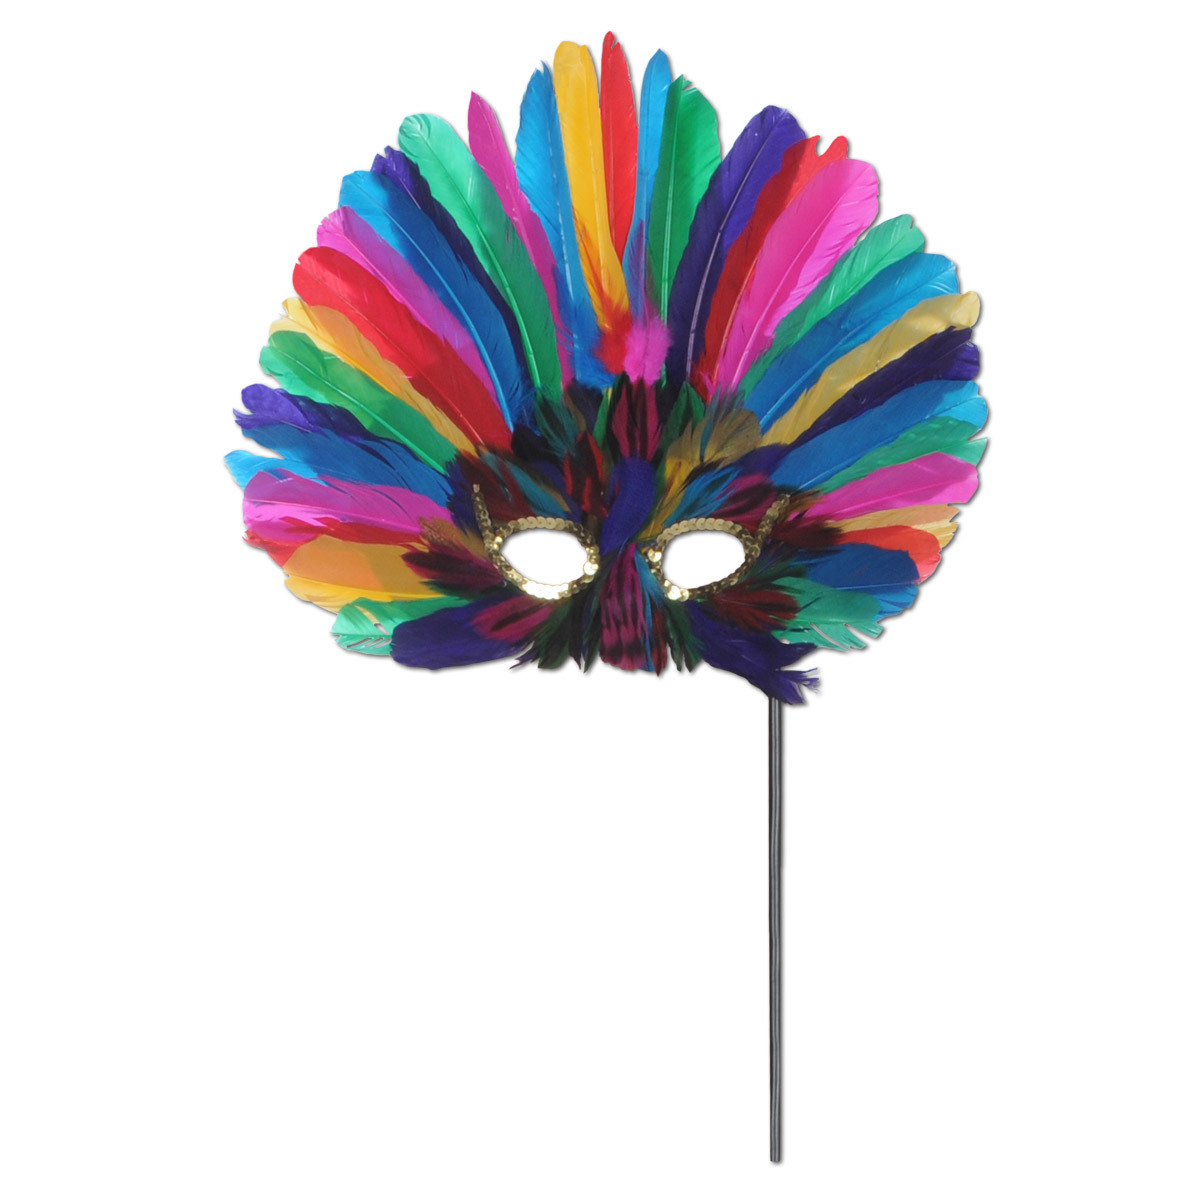 Multi-colored, feathered party mask on a black stick.